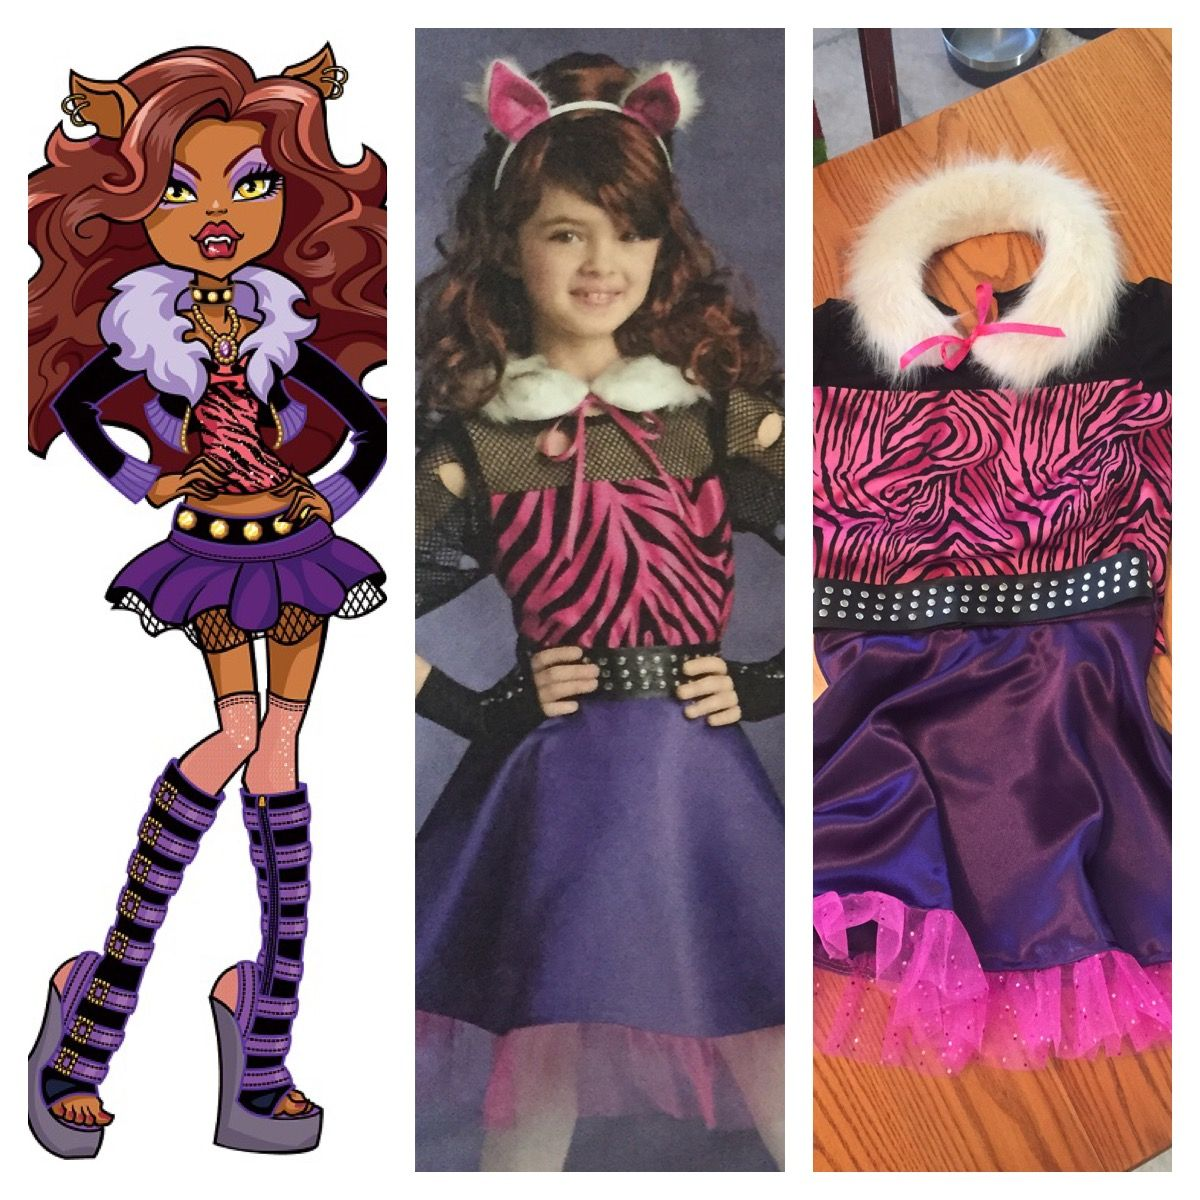 Monster High Clawdeen Wolf Kostuem.Monster High Clawdeen Wolf Costume Wolf Costume Costumes Zelda Characters